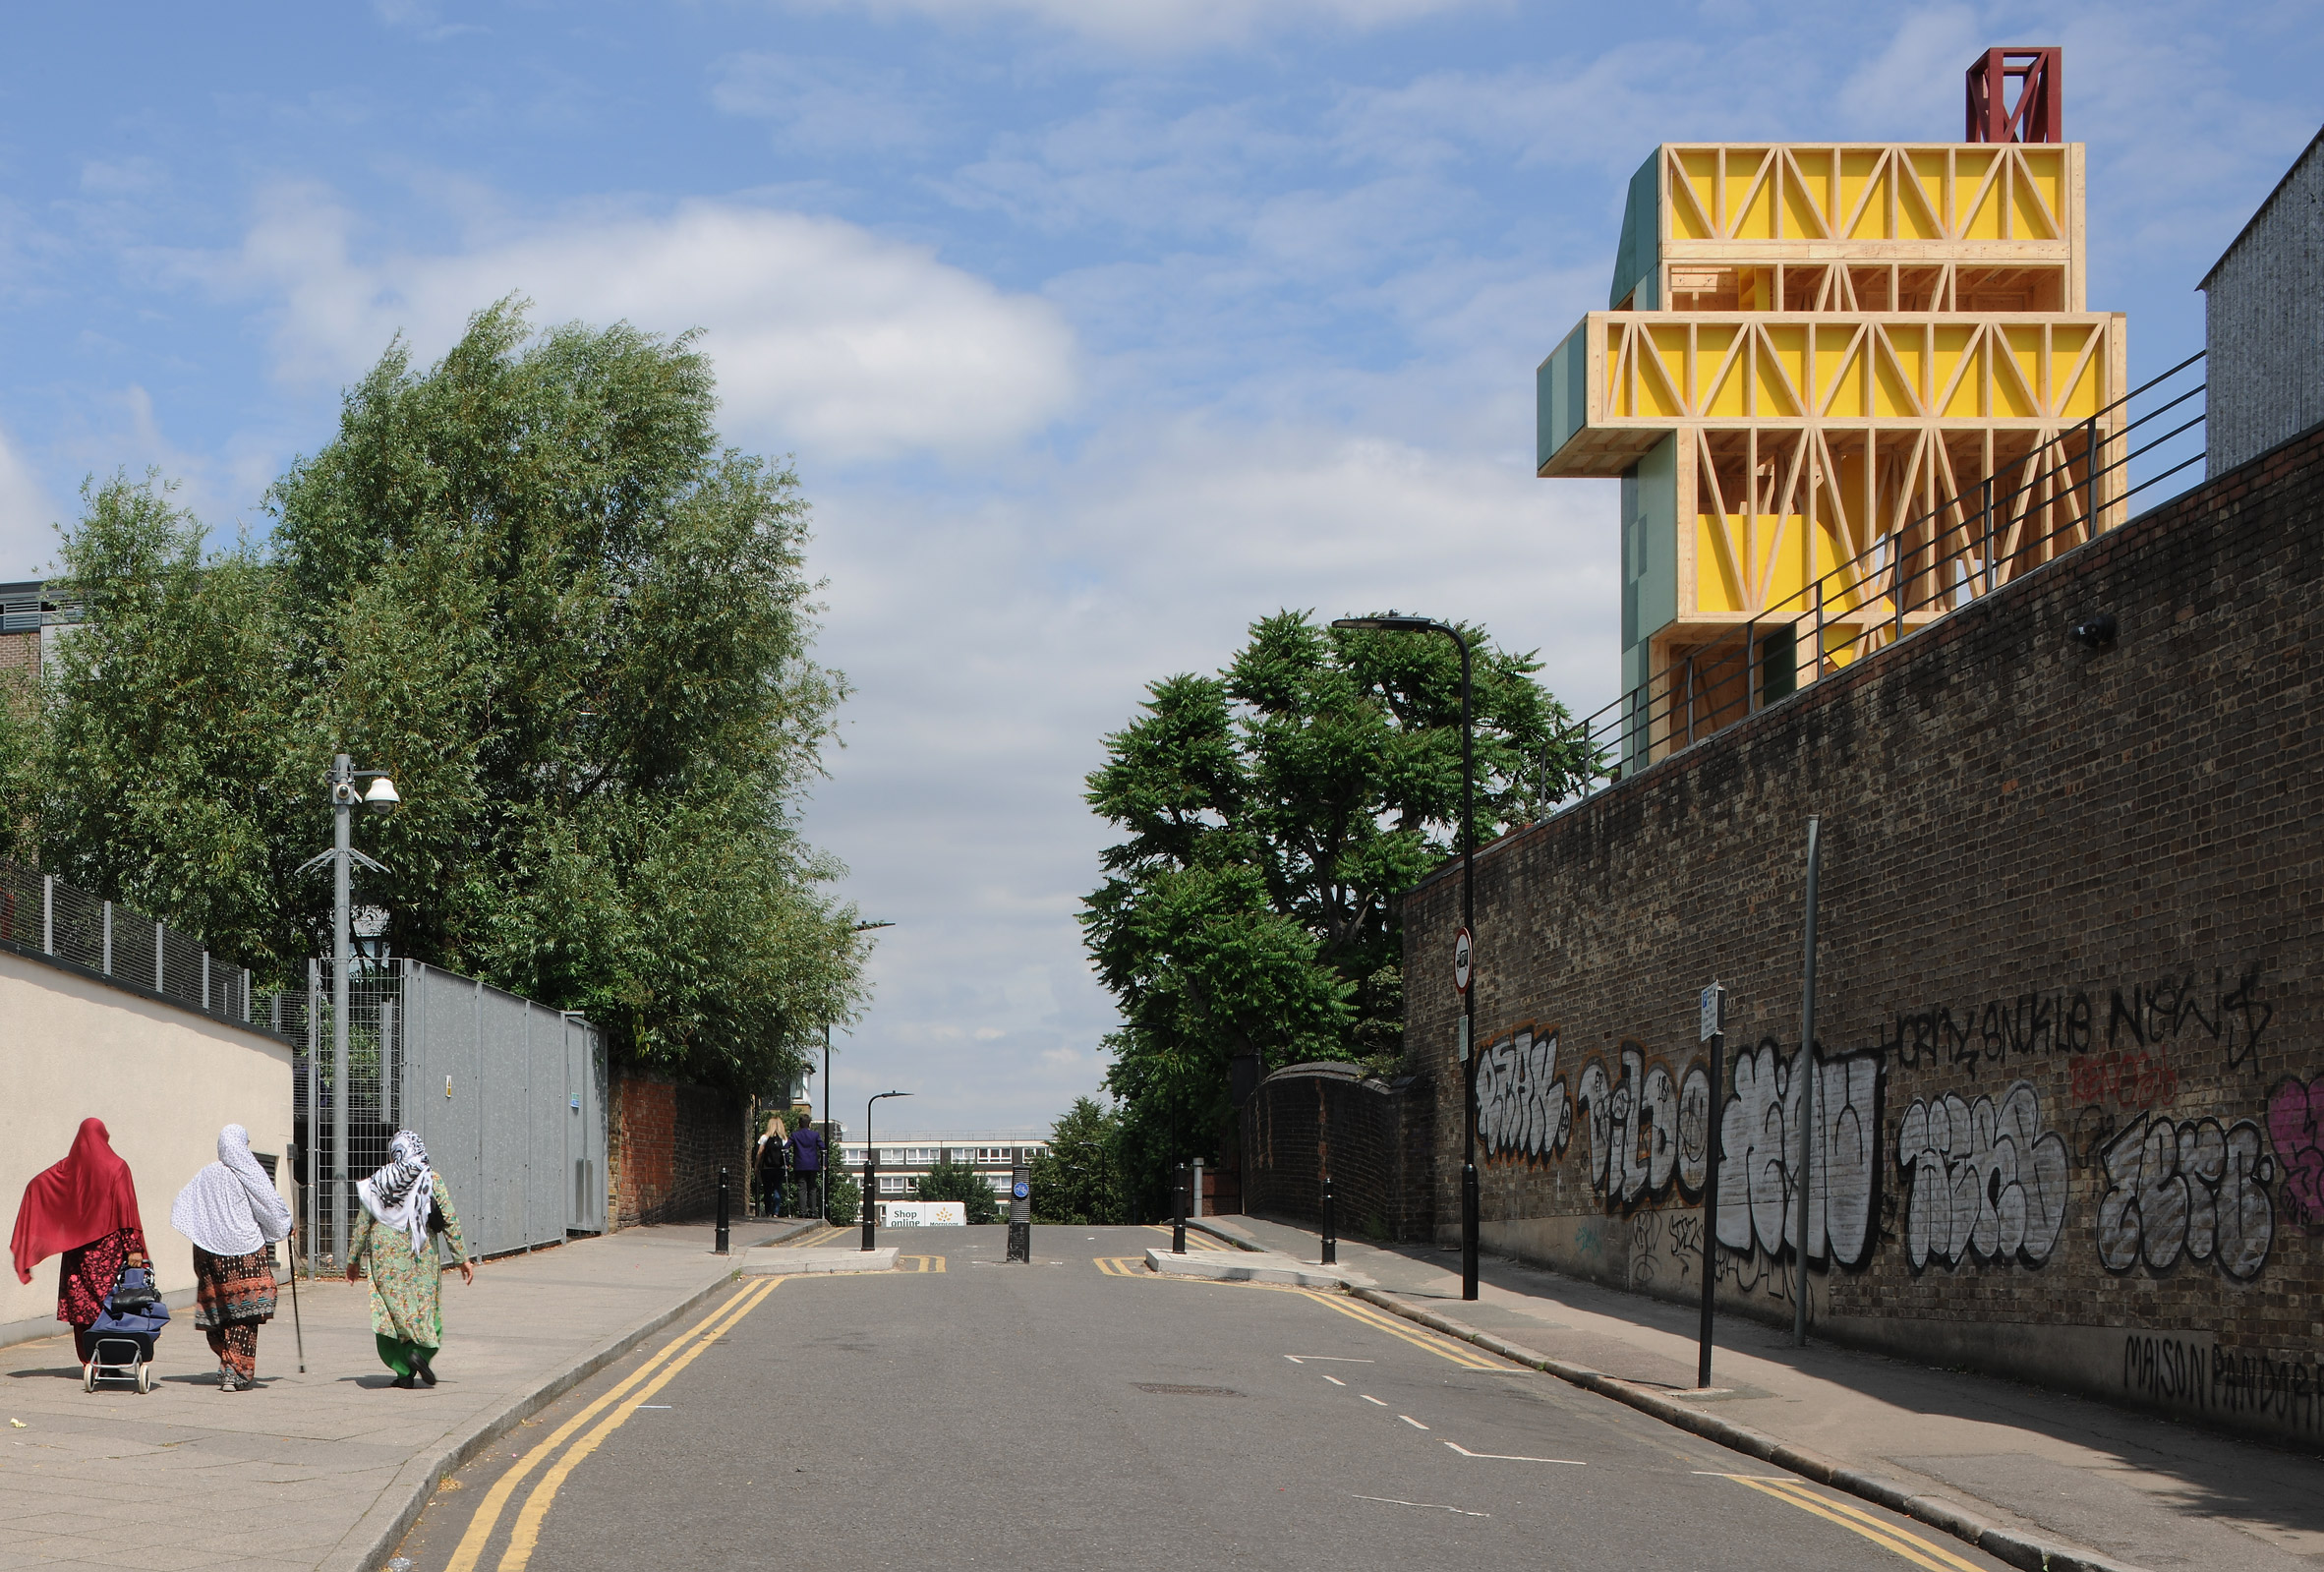 The Potemkin Theatre by Maich Swift Architects in Haggeston London is the third Antepavilion